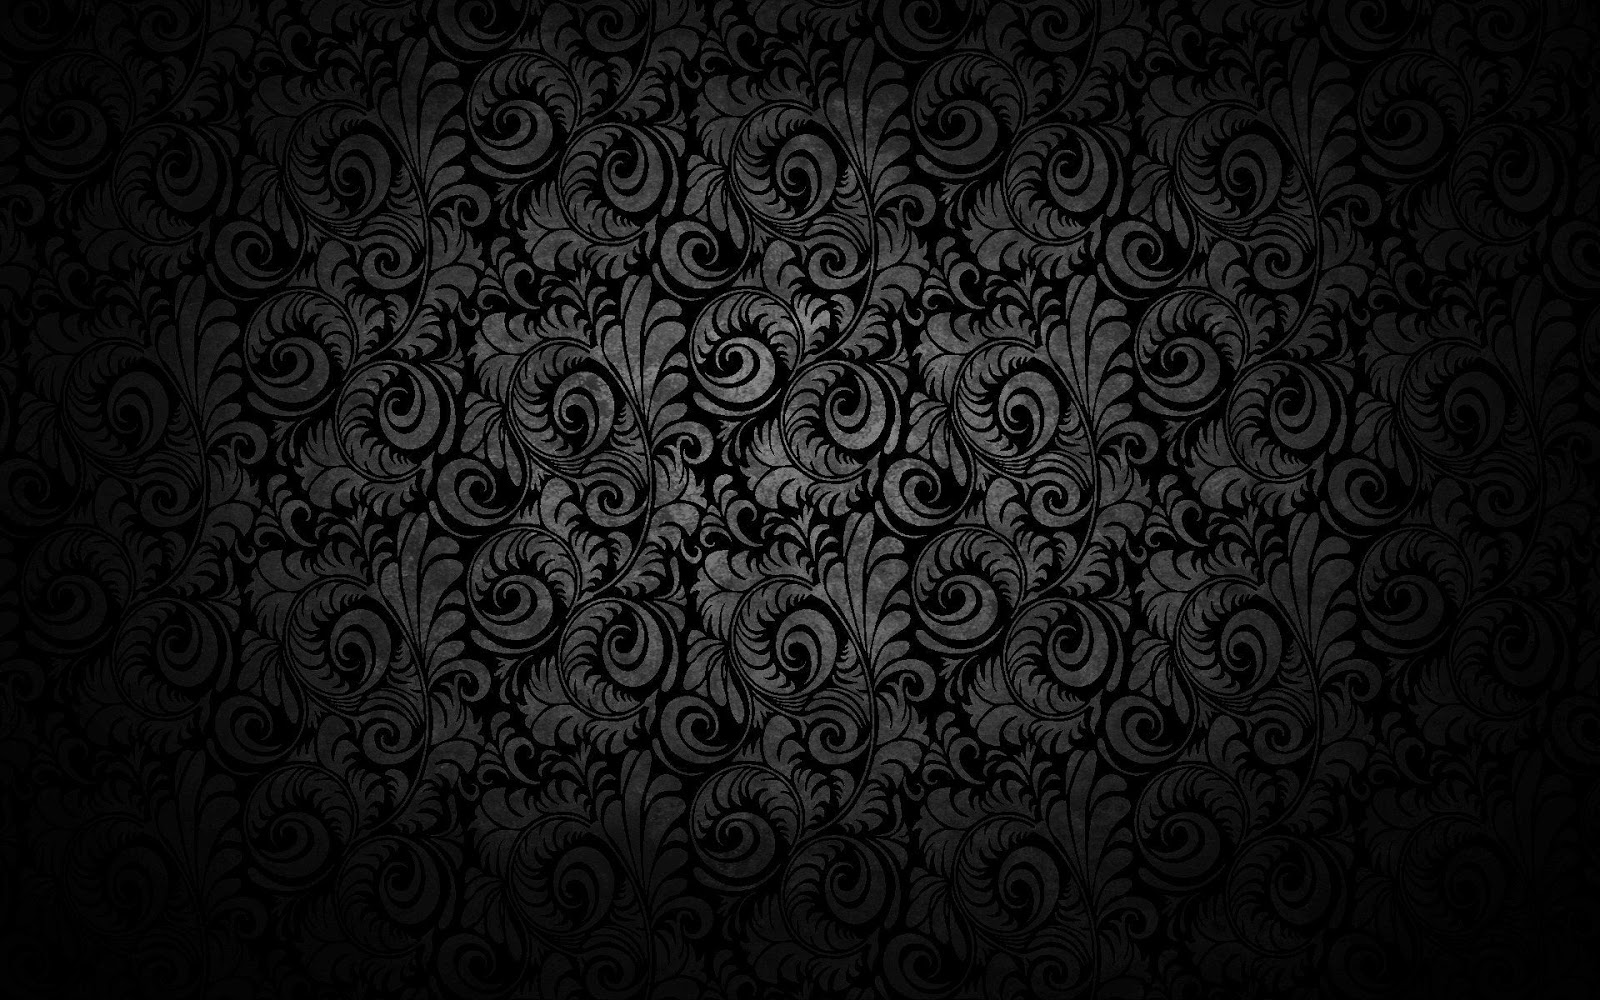 Top 30 High Quality Free Photoshop Patterns And Textures ...